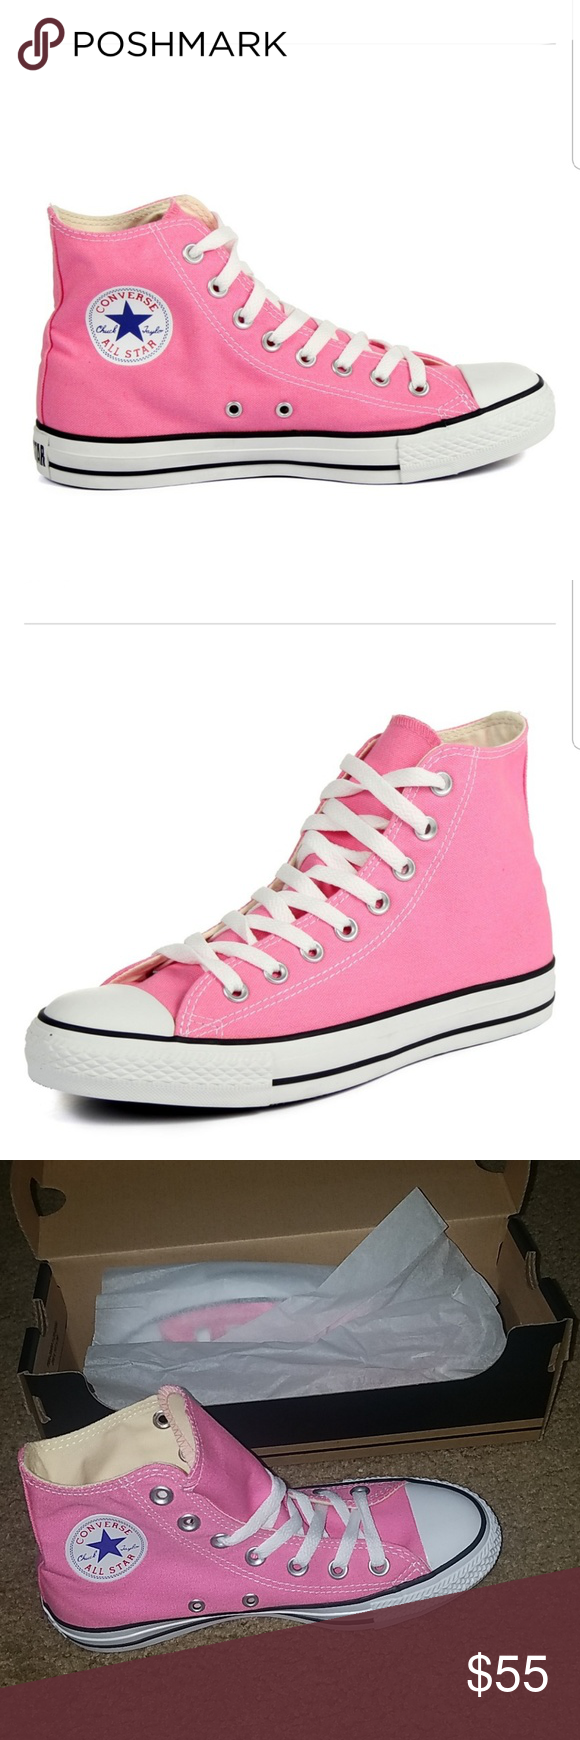 a0f7ac082ad36 Converse shoes Converse M9006- Chuck Taylor All Star Hi pink 4 men 6 women.  Brand new with box. Price is firm. No trades!Don't miss the chance to wear  these ...